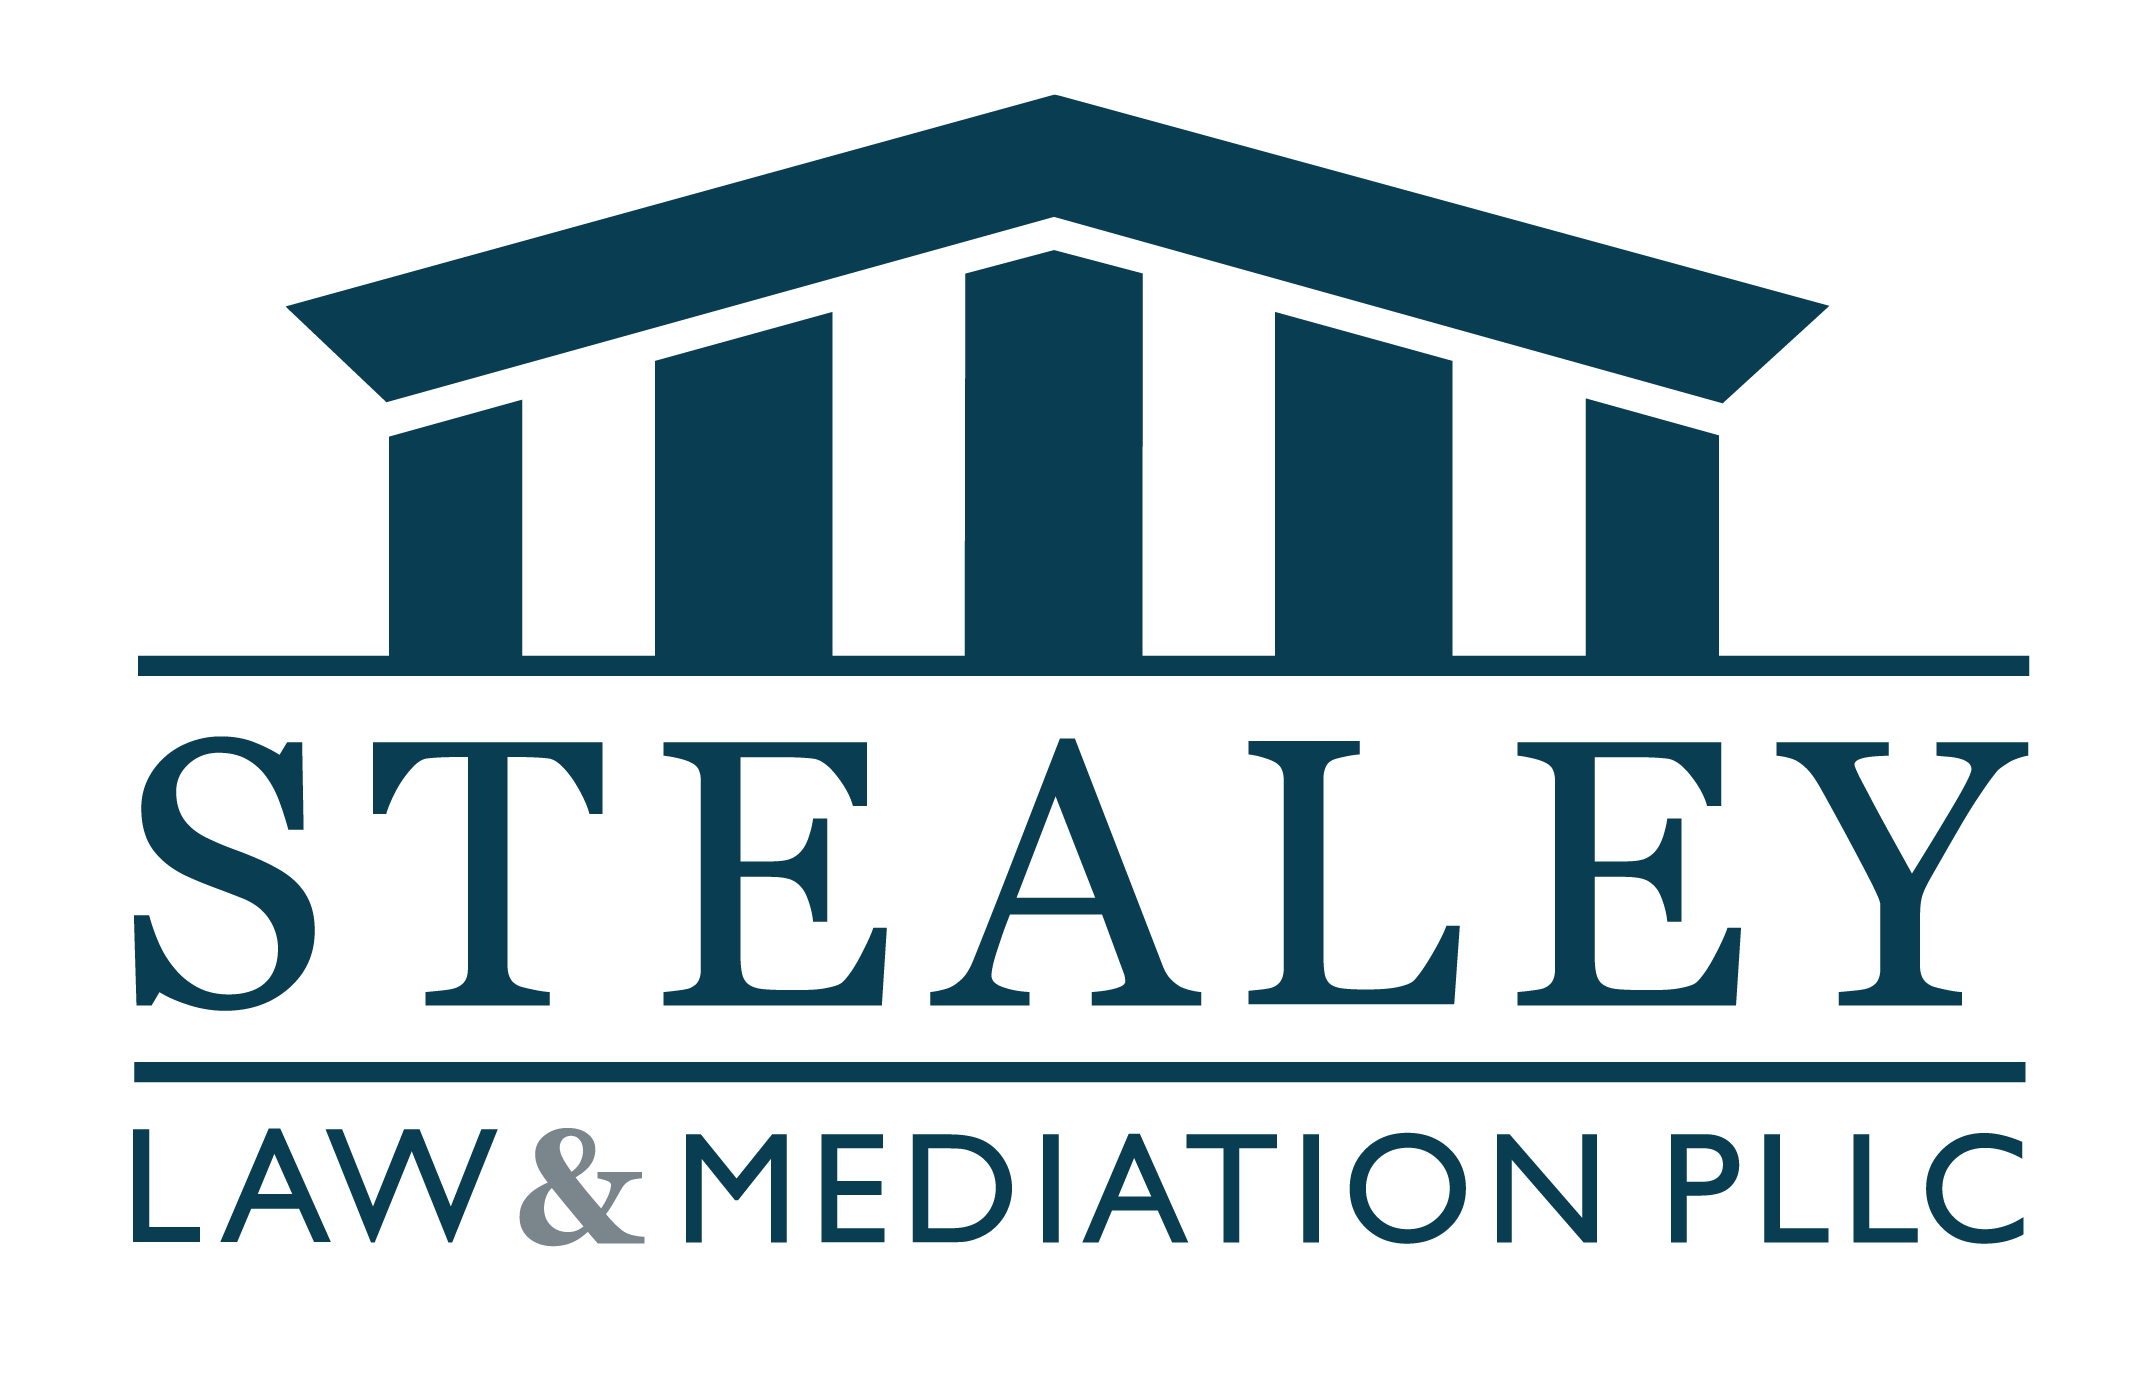 Stealey Law & Mediation